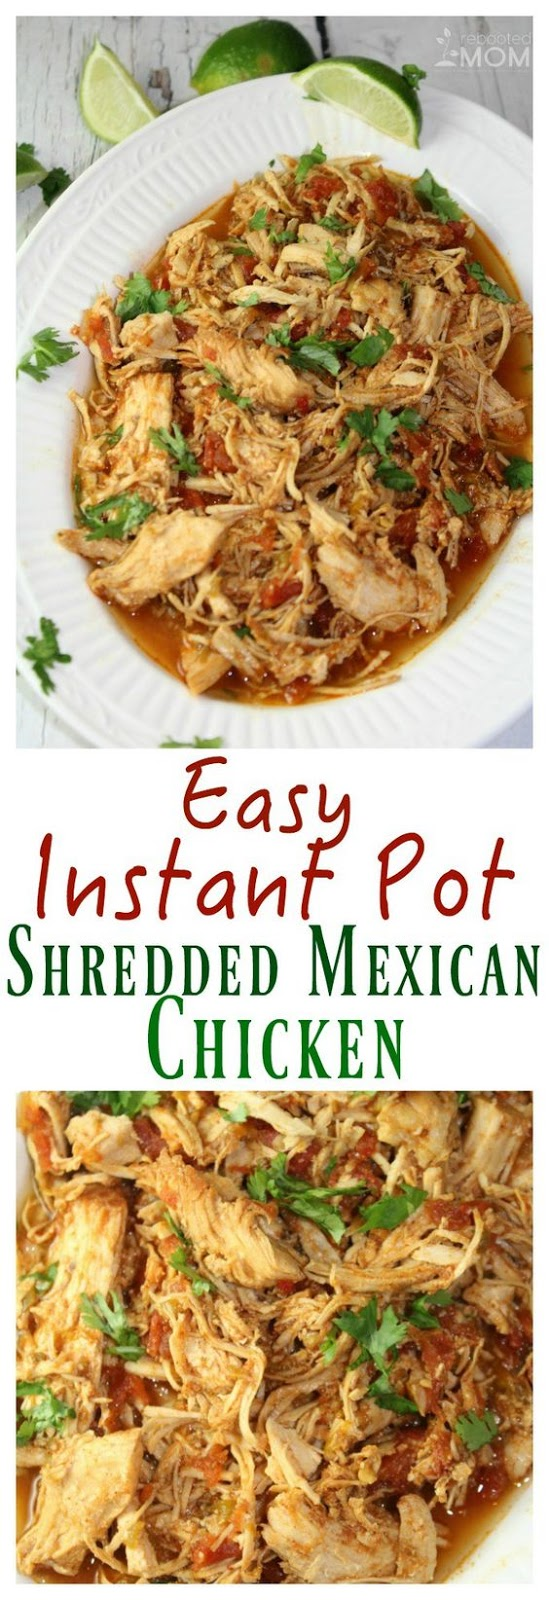 DELICIOUS INSTANT POT SHREDDED MEXICAN CHICKEN